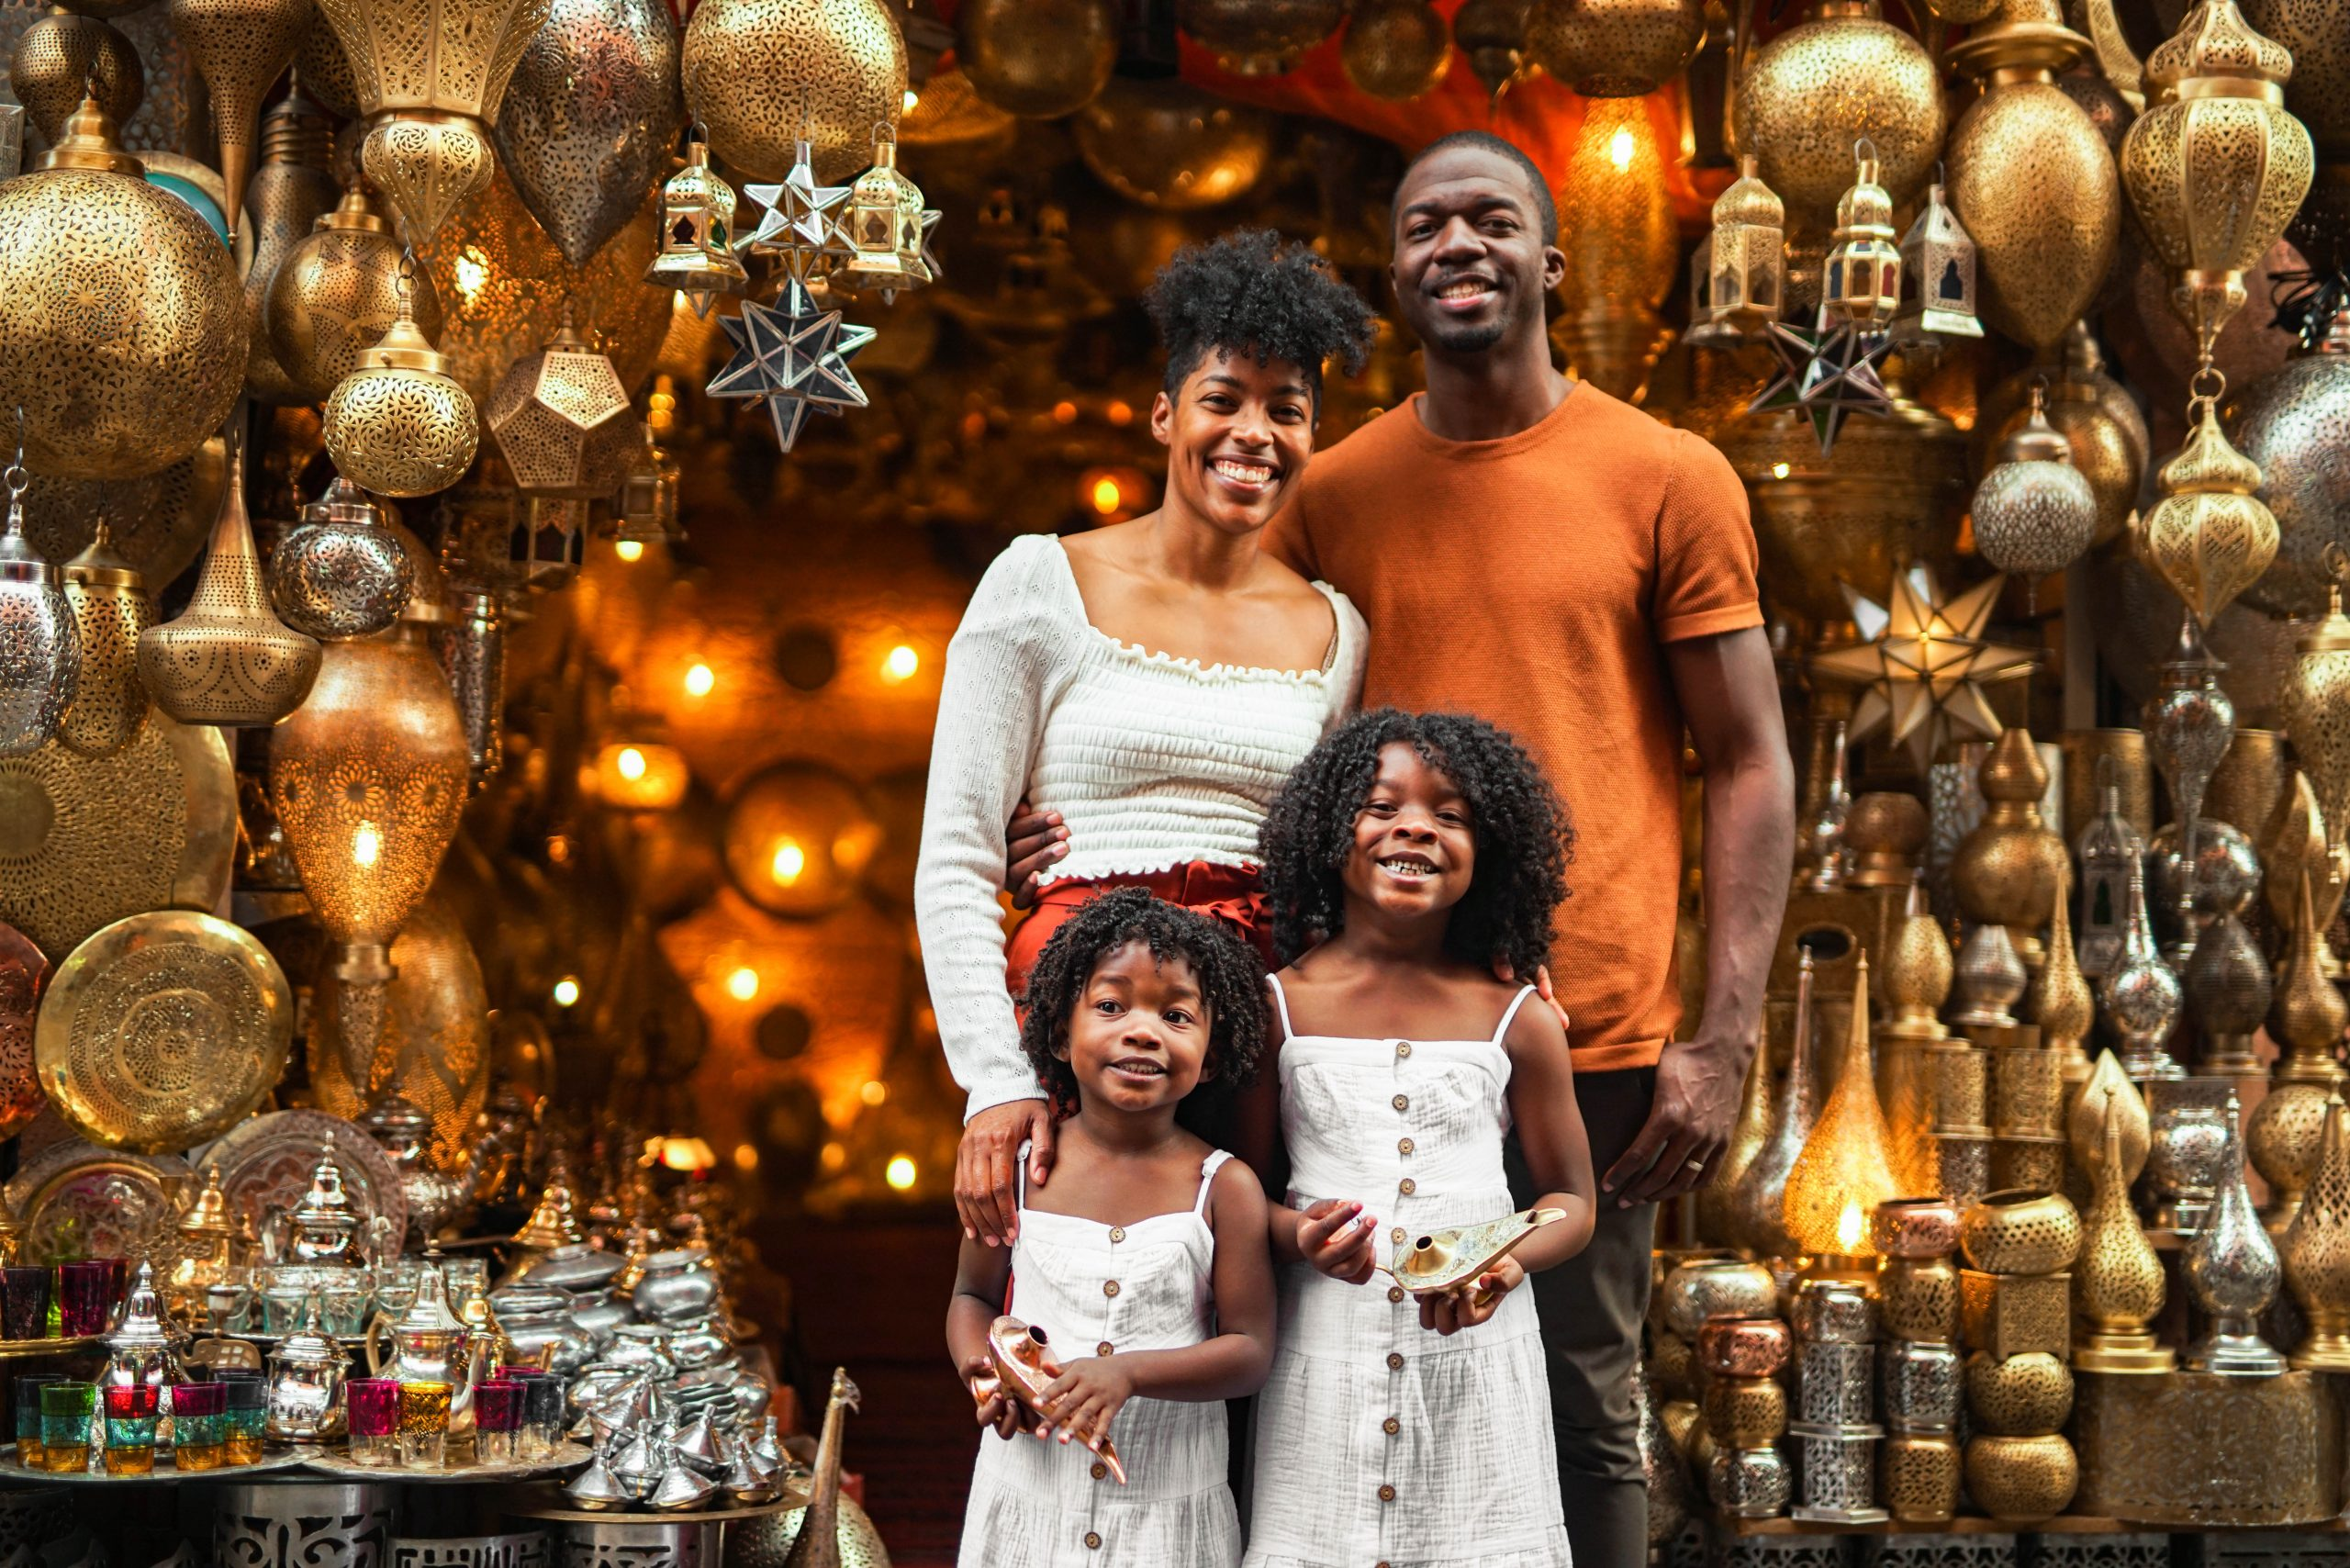 Monet Hambrick and Family - The Traveling Child